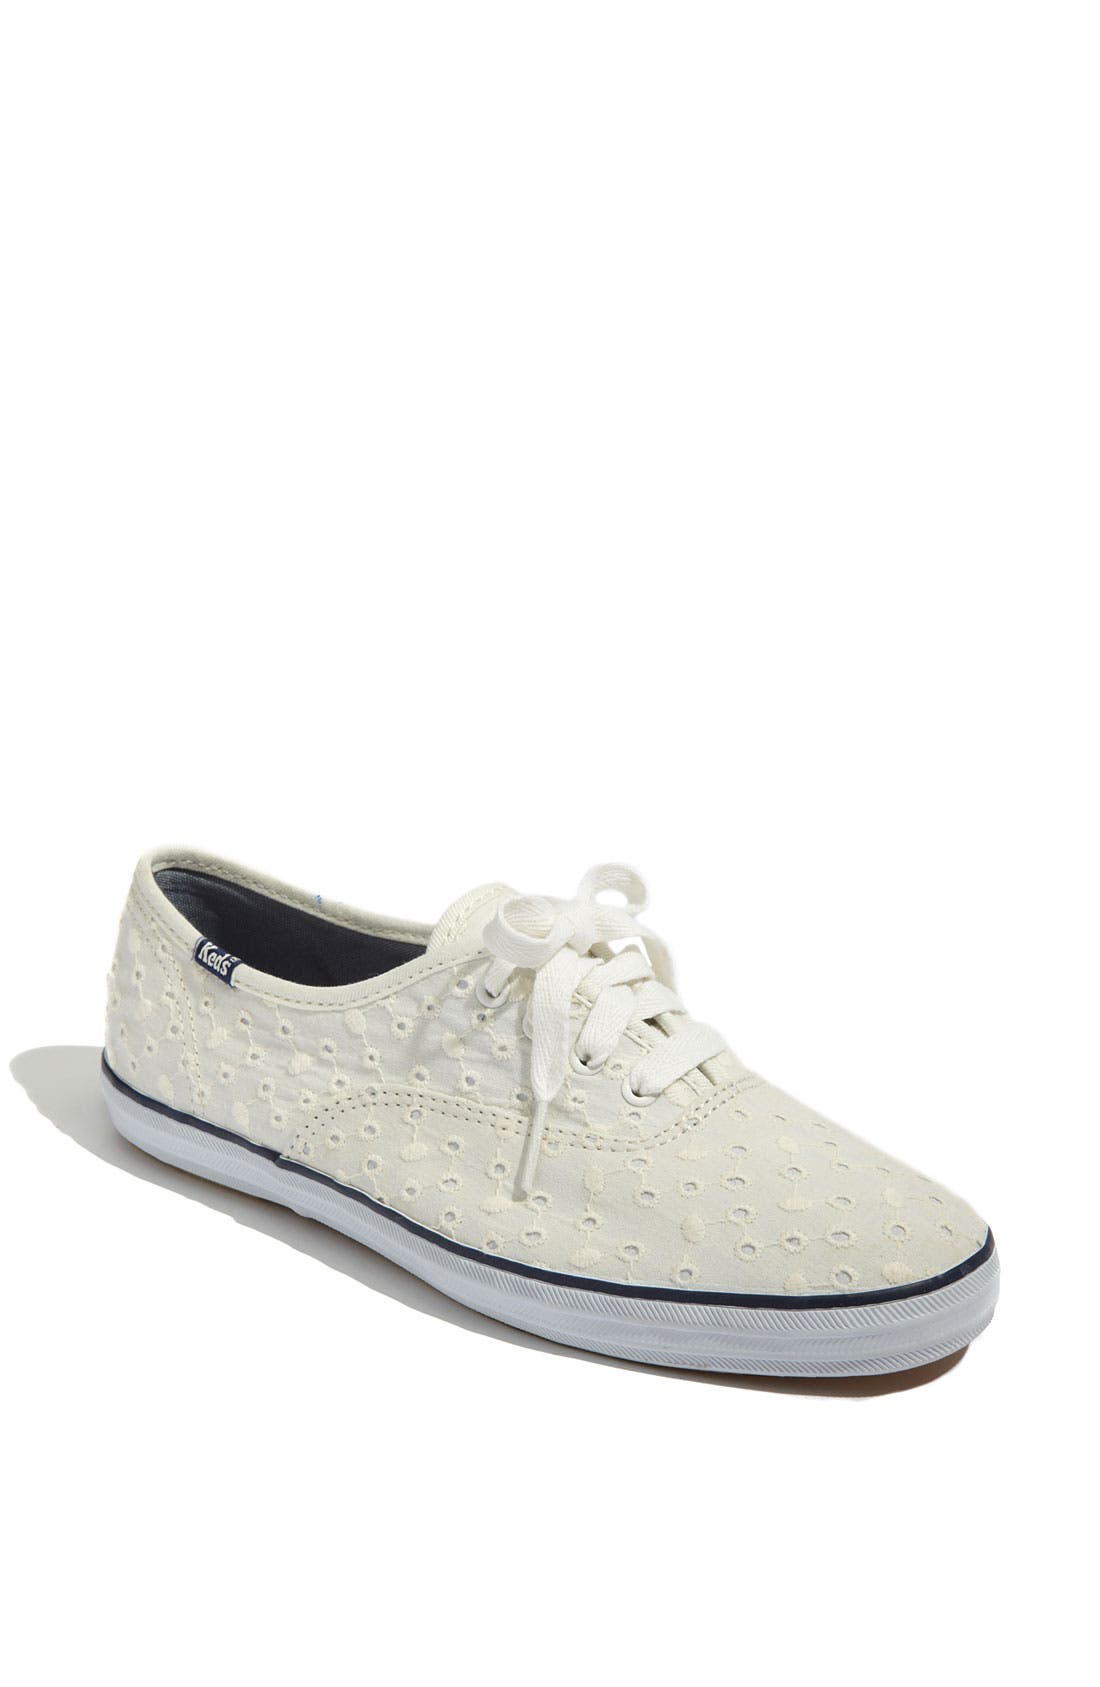 Alternate Image 1 Selected - Keds® 'Champion - Eyelet' Sneaker